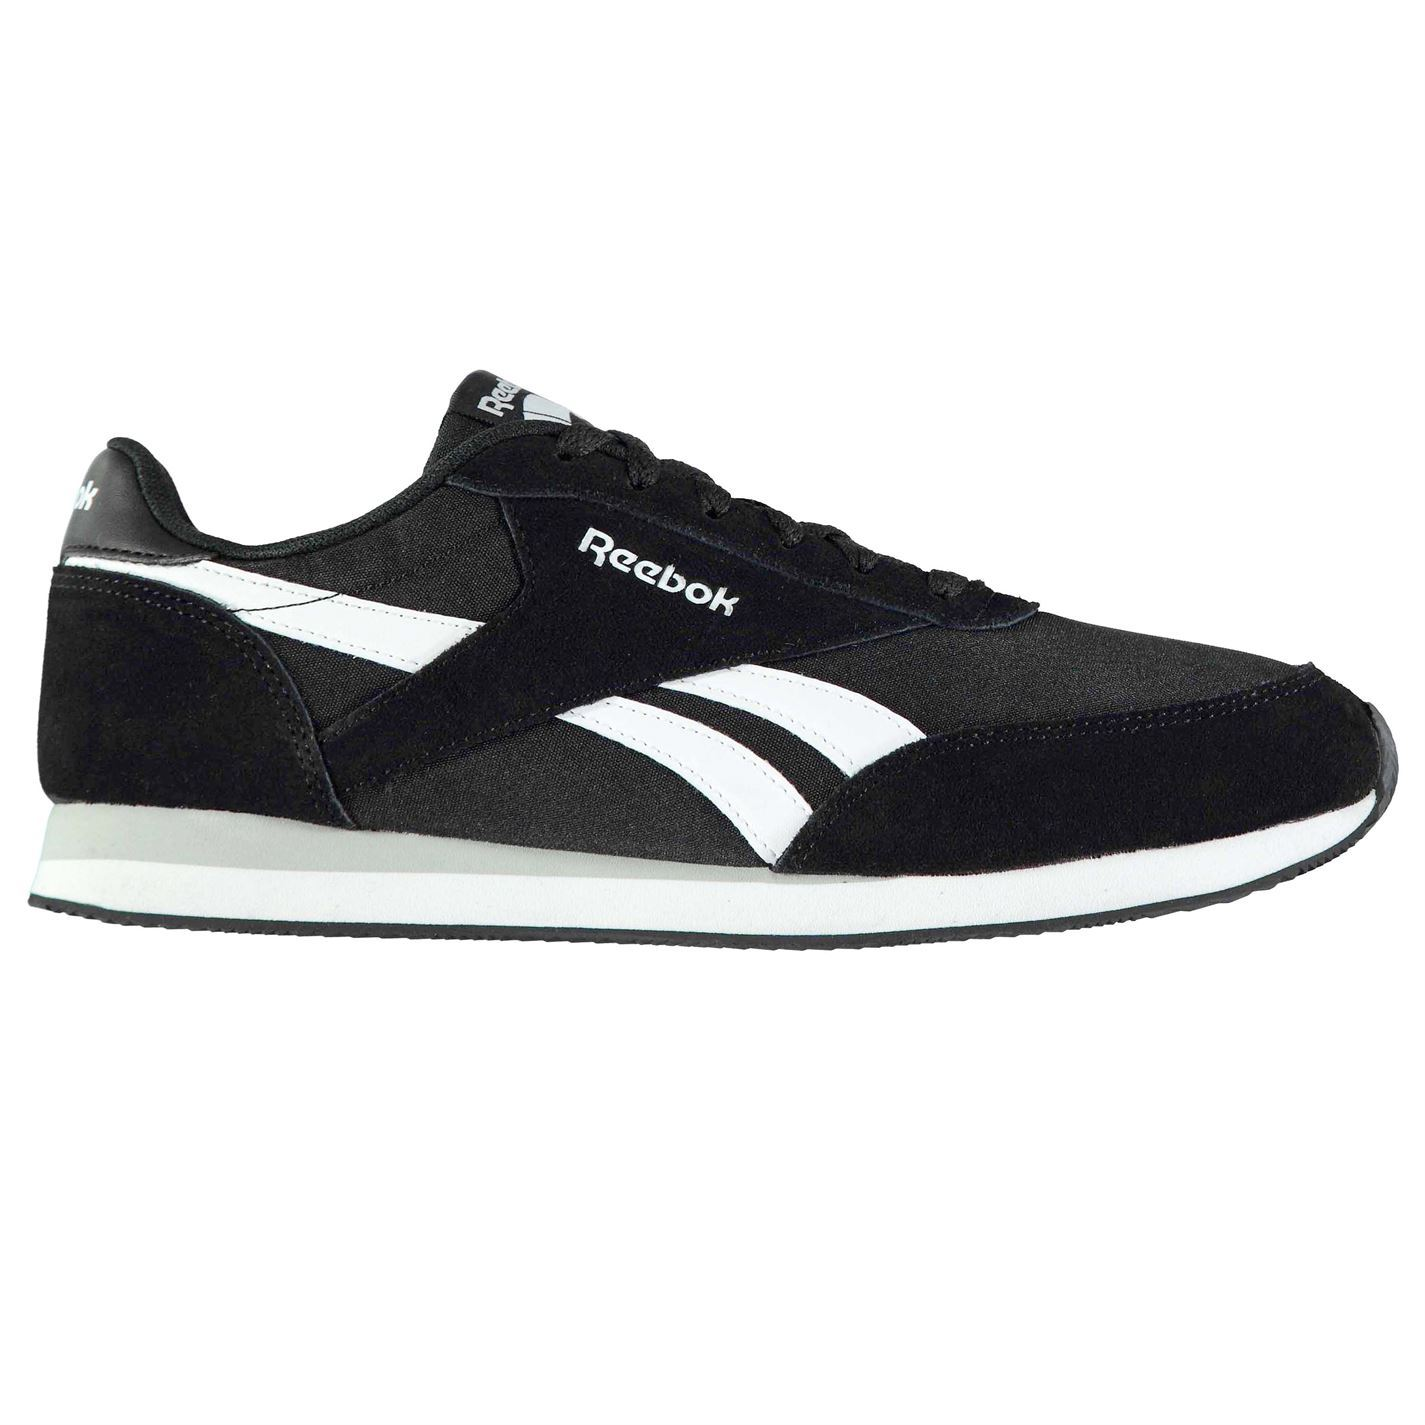 95f93702f85 Details about Reebok Classic Jogger Trainers Mens Black White Sports Shoes  Sneakers